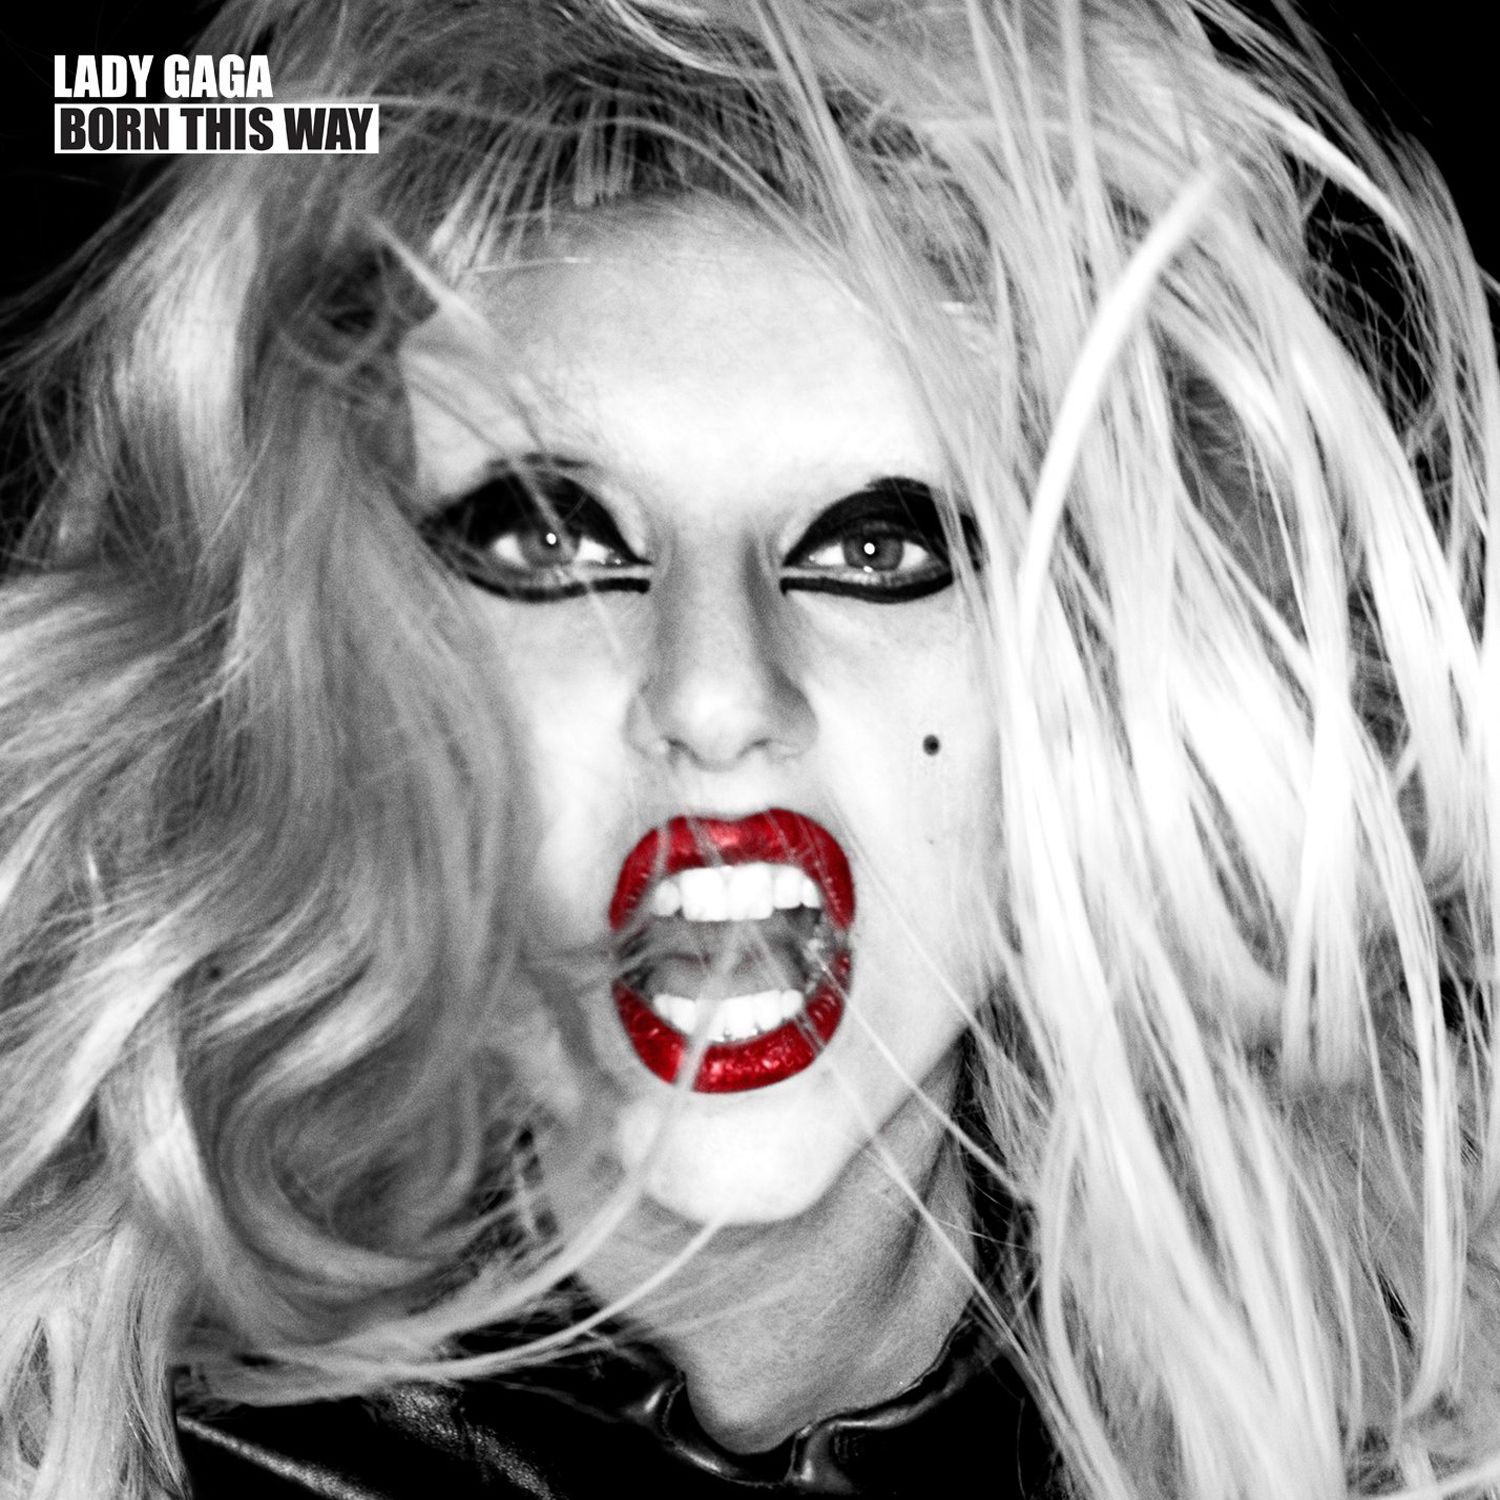 http://1.bp.blogspot.com/-RQr9g6bwZiY/TeFyMf0tyEI/AAAAAAAAAgA/deKKe4_mD4E/s1600/lady-gaga-born-this-way-deluxe-edition-album-cover.jpg